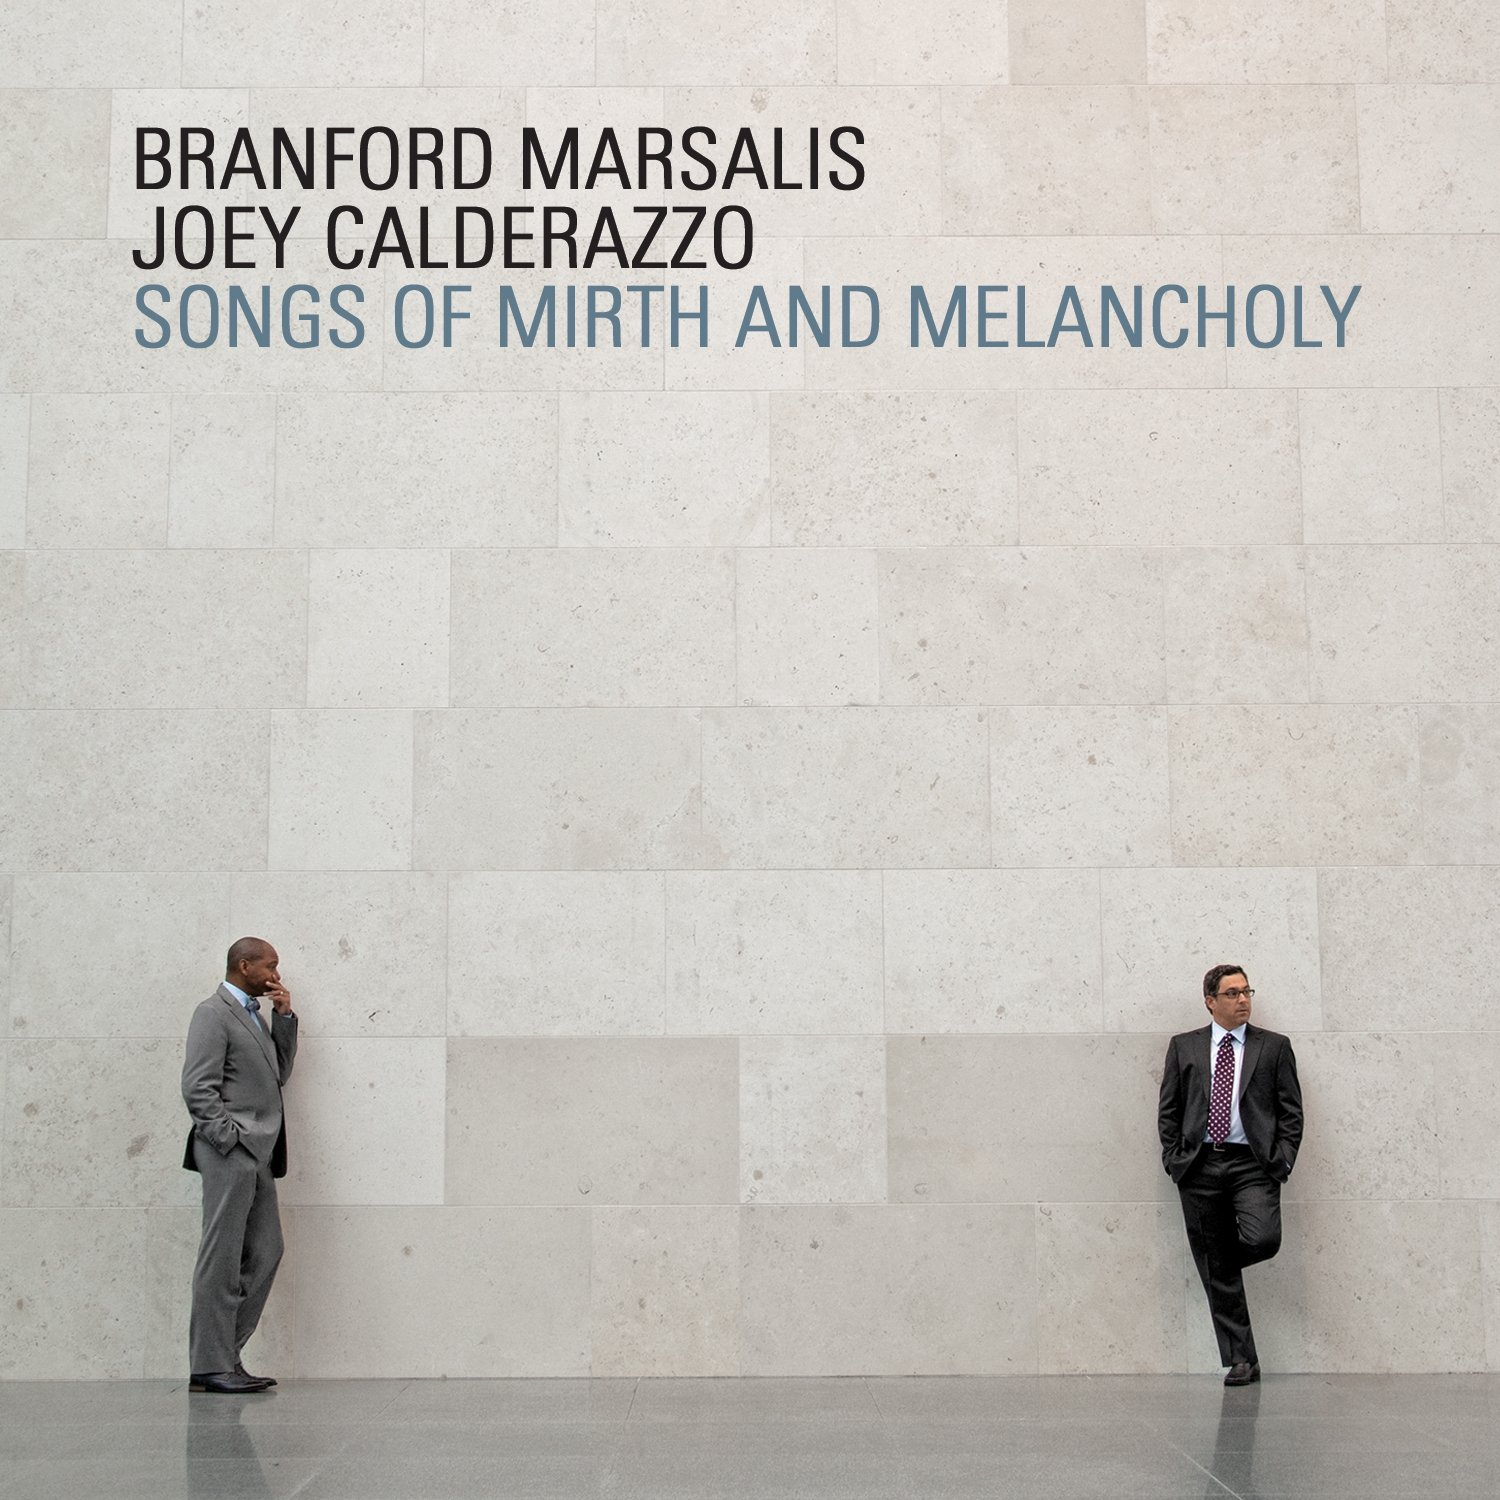 Branford Marsalis and Joe Calderazzo